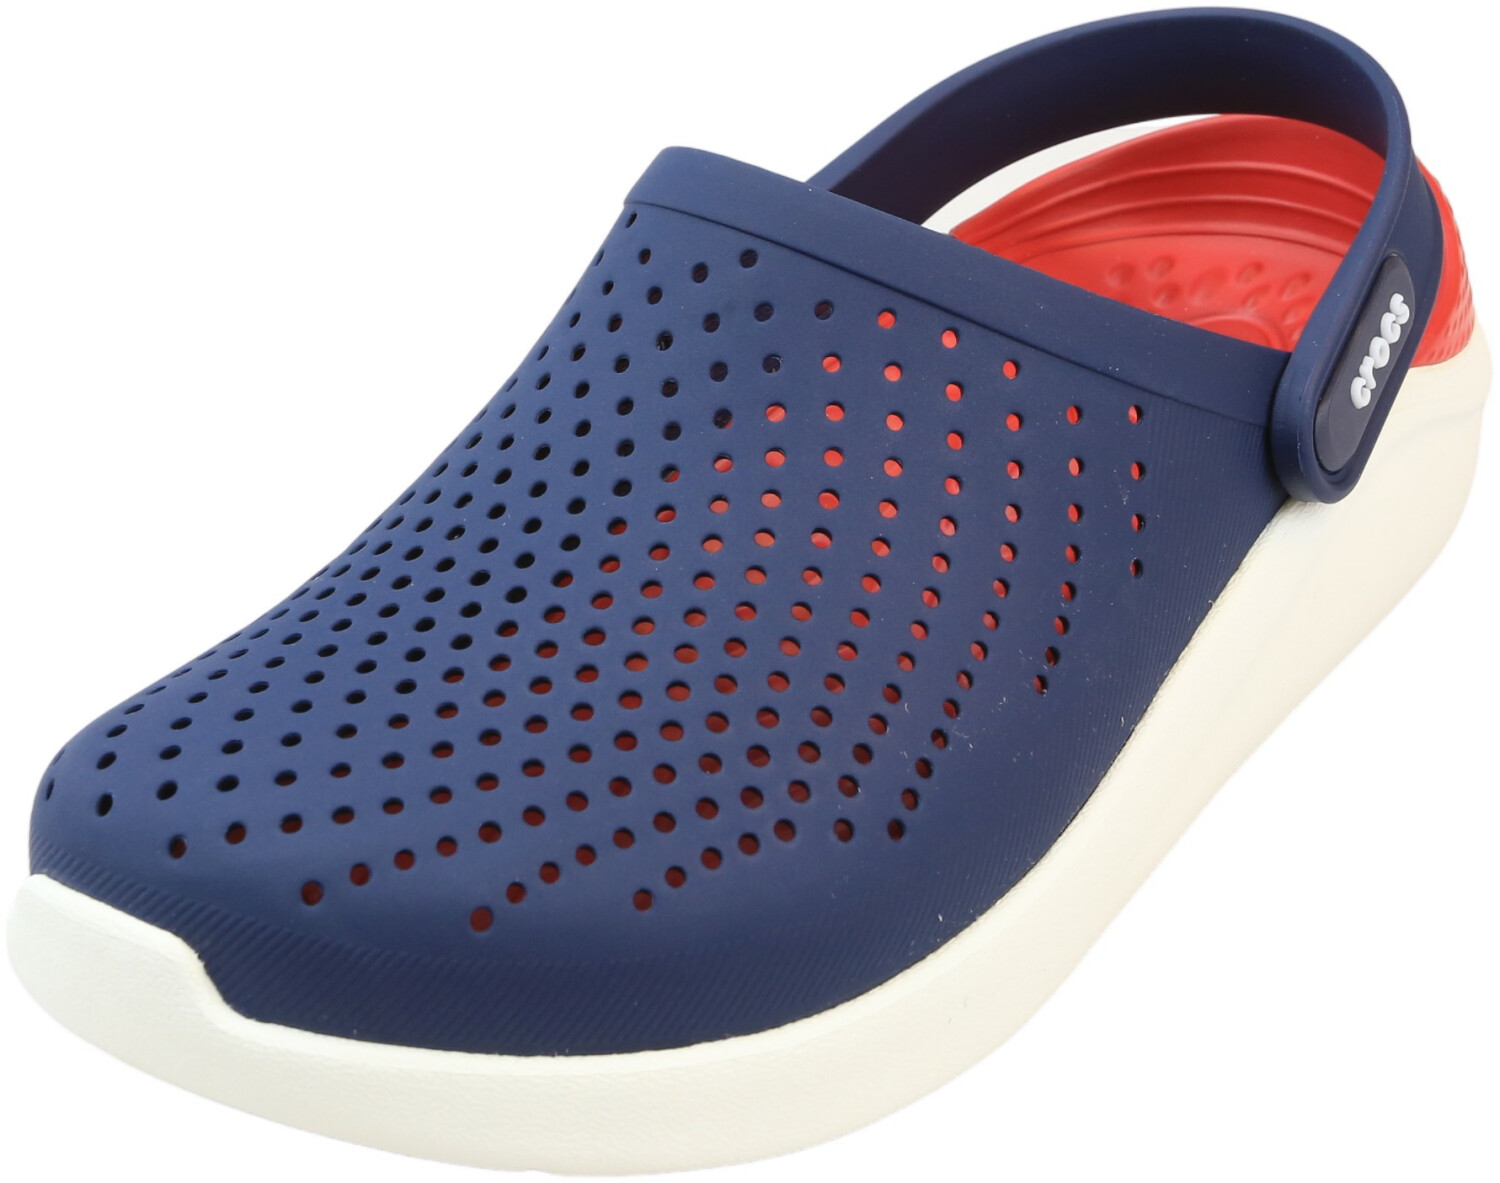 Crocs Literide Clog Navy / Pepper Ankle-High Rubber Clogs - 11W 9W